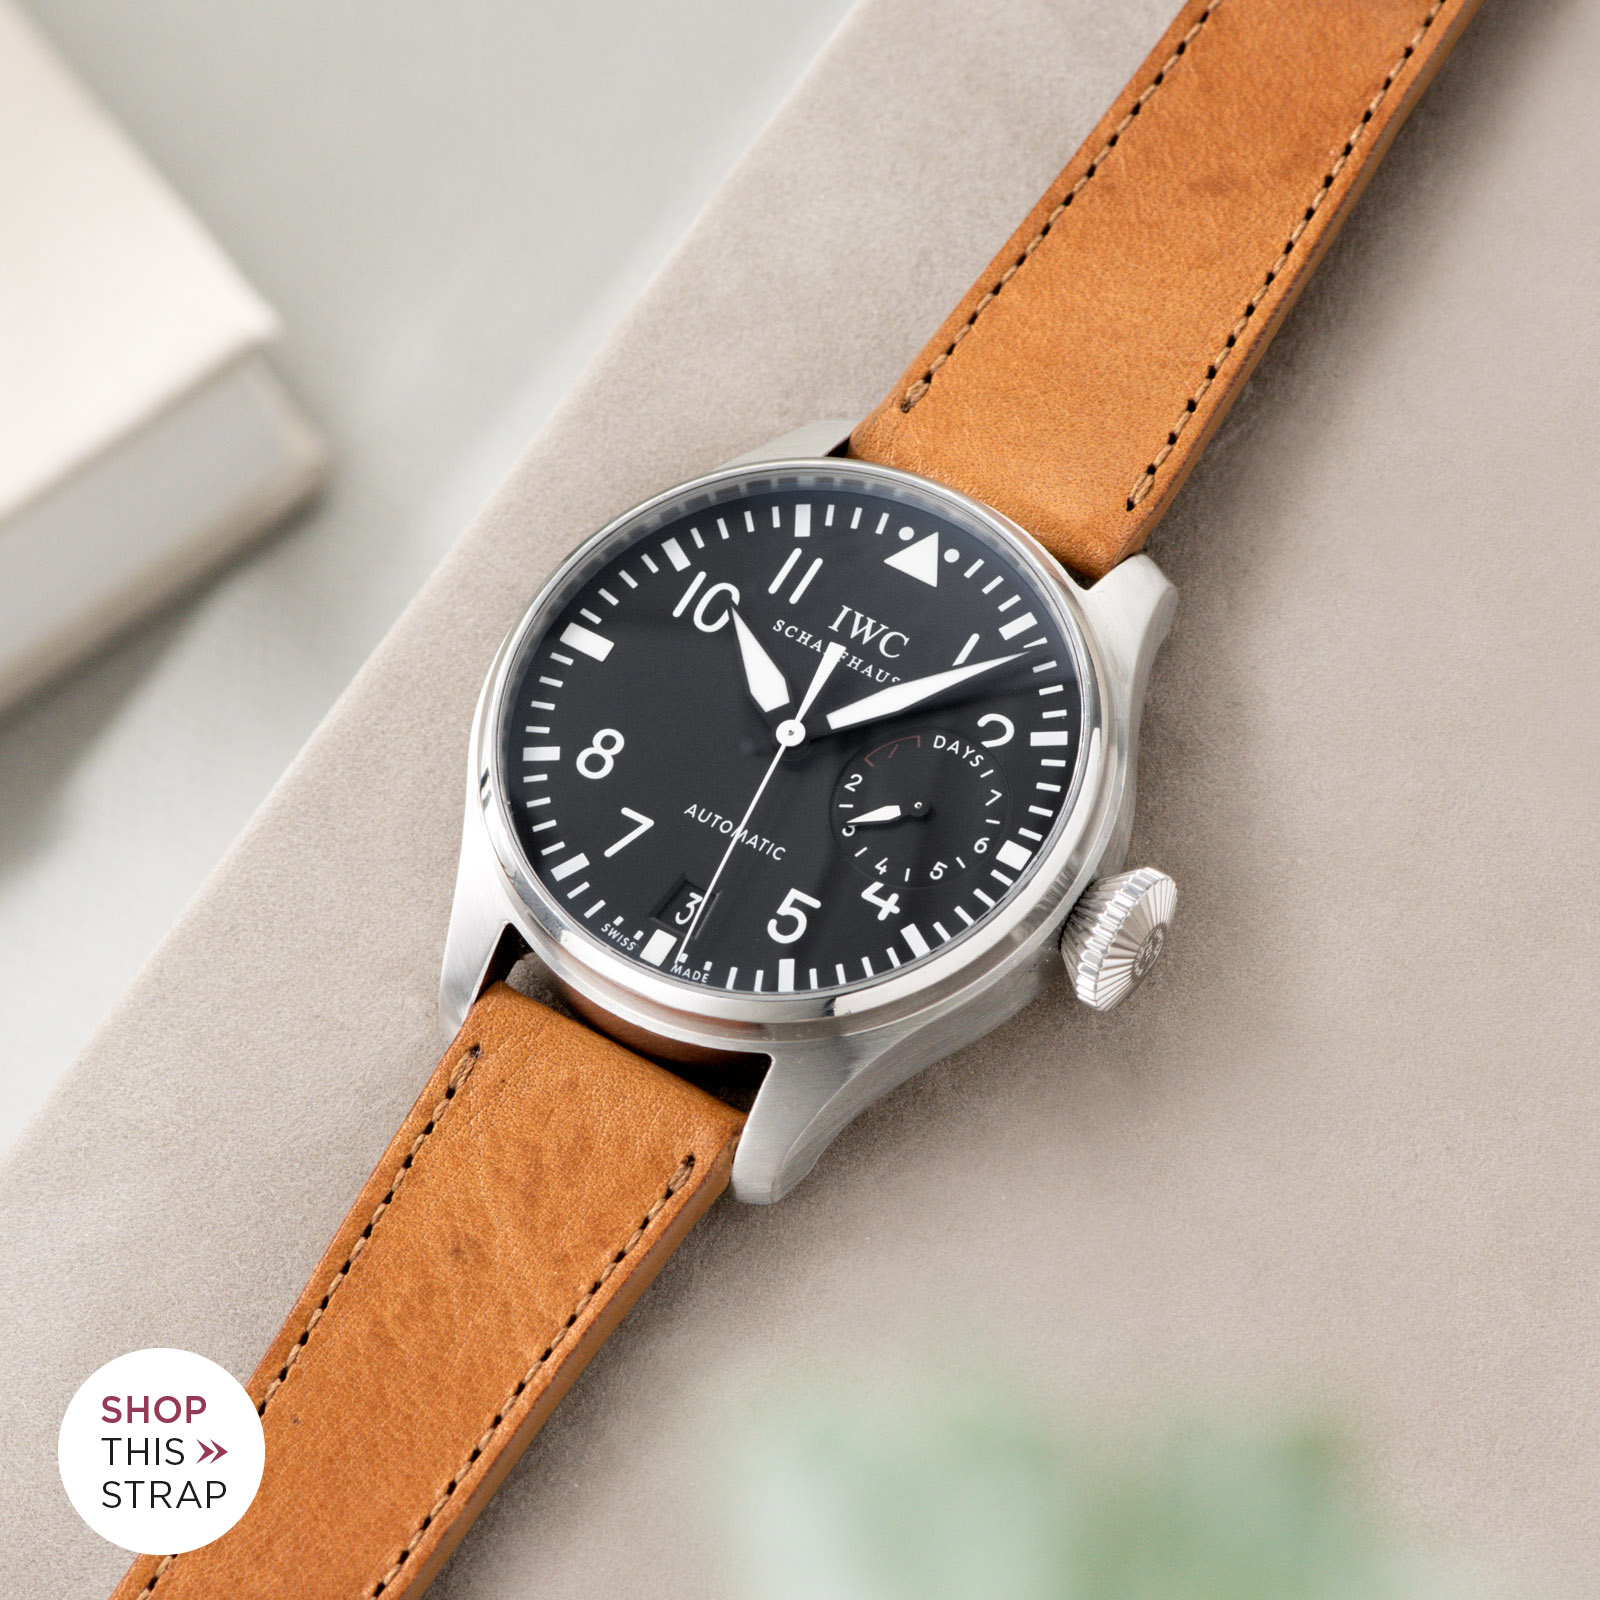 Bulang and Sons_Strap Guide_IWC Big Pilot ref IW5004_Gilt Brown Tonal Leather Watch Strap